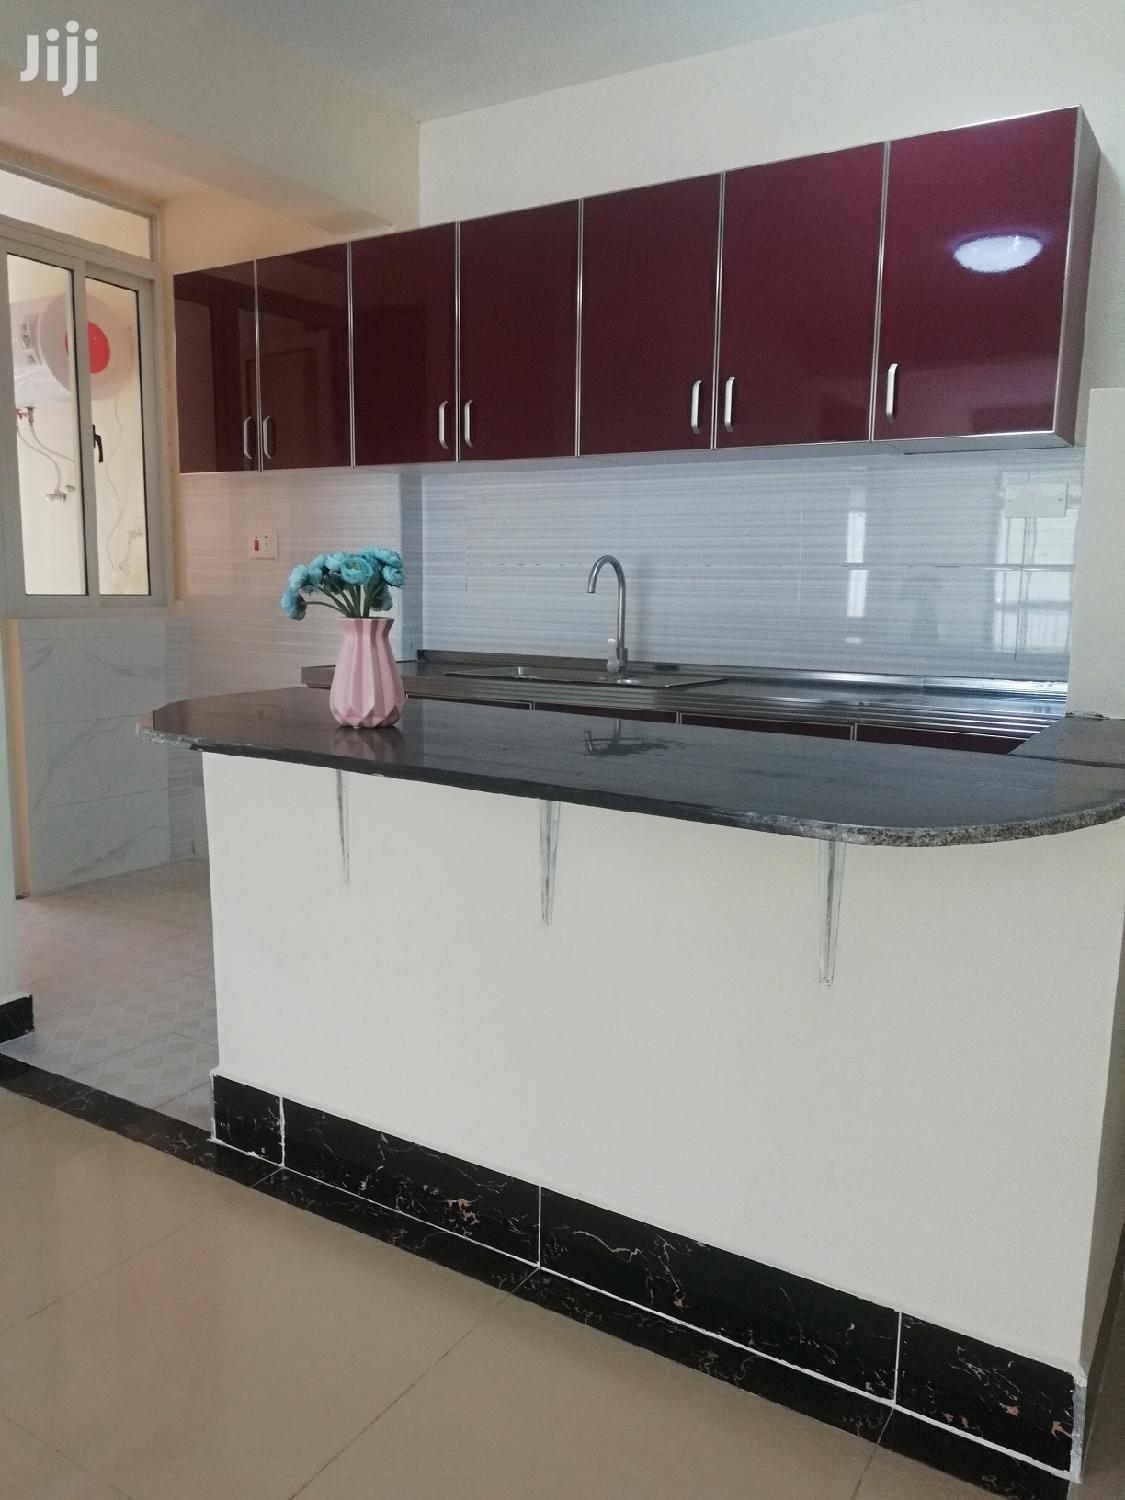 Property World;3brs Apartment With Lift,Gym And Very Secure   Houses & Apartments For Sale for sale in Kilimani, Nairobi, Kenya